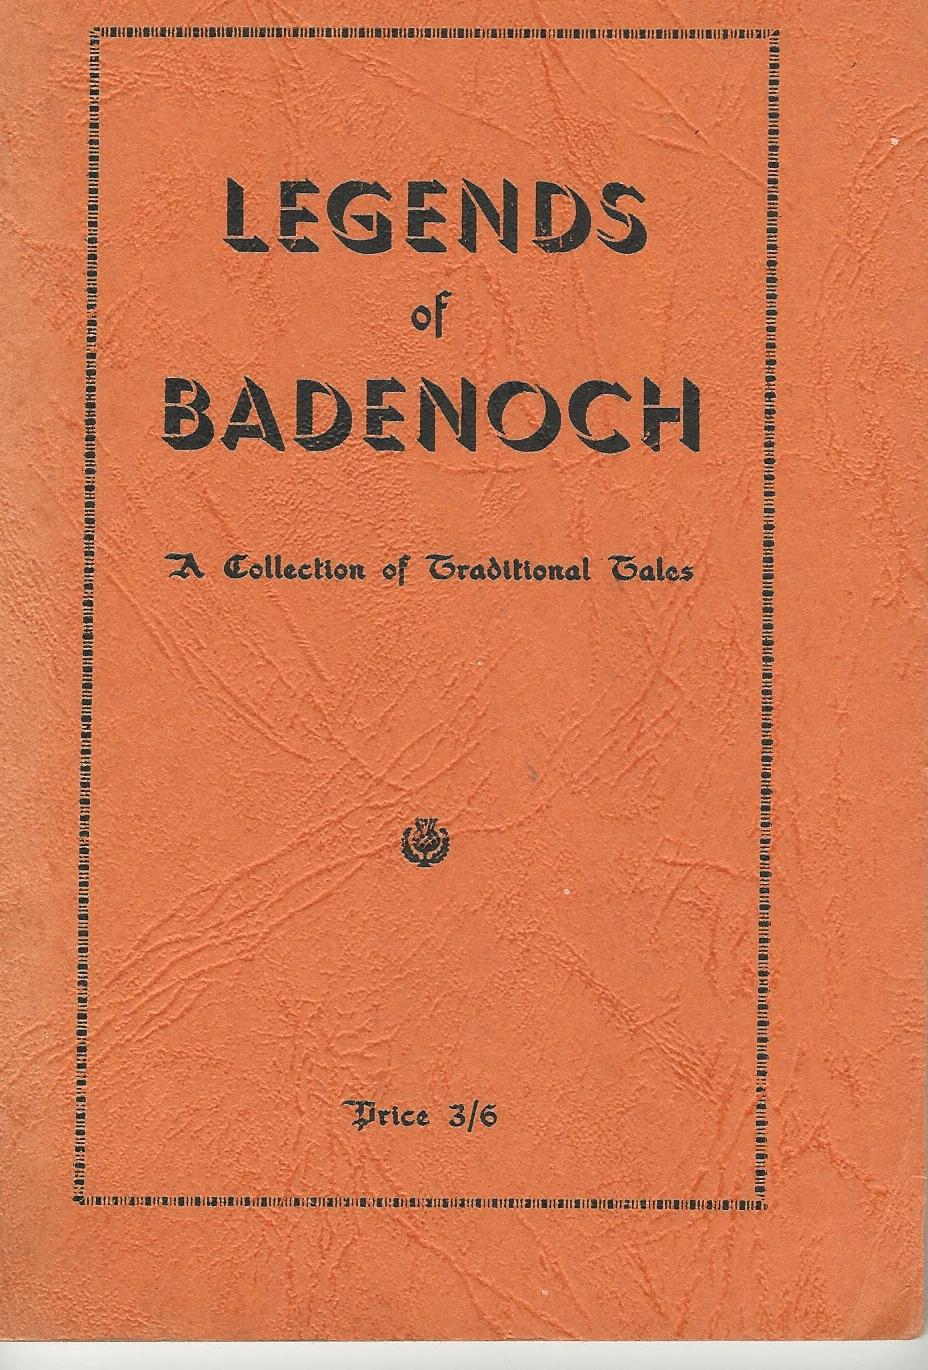 Image for Legends of Badenoch: A Collection of Traditional Tales.